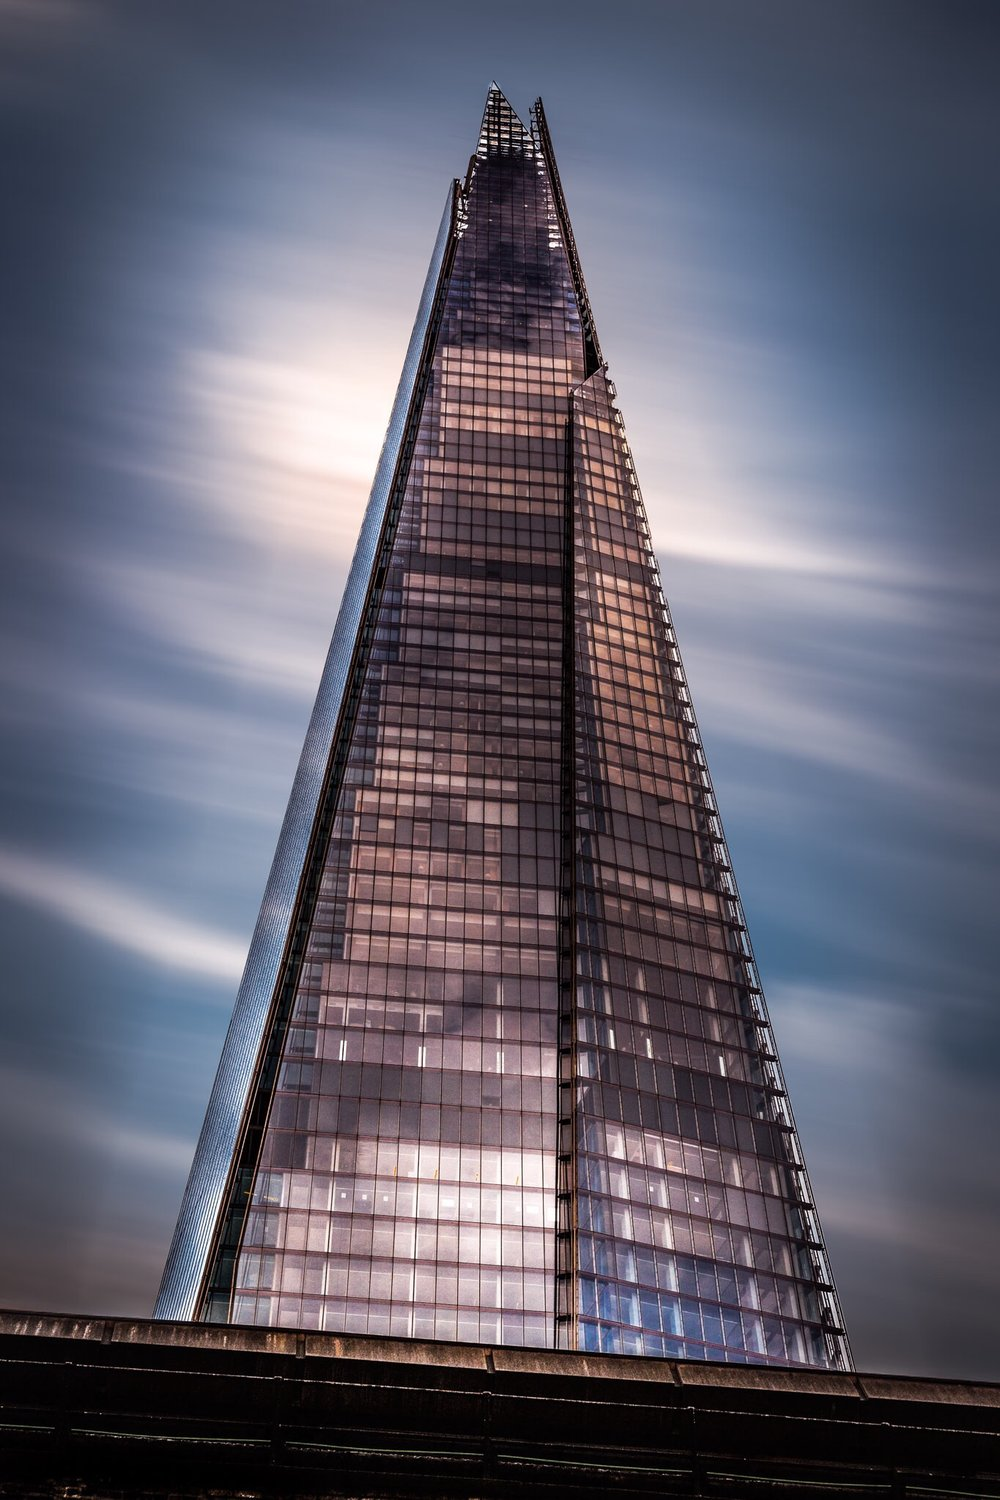 Picture of the London Shard